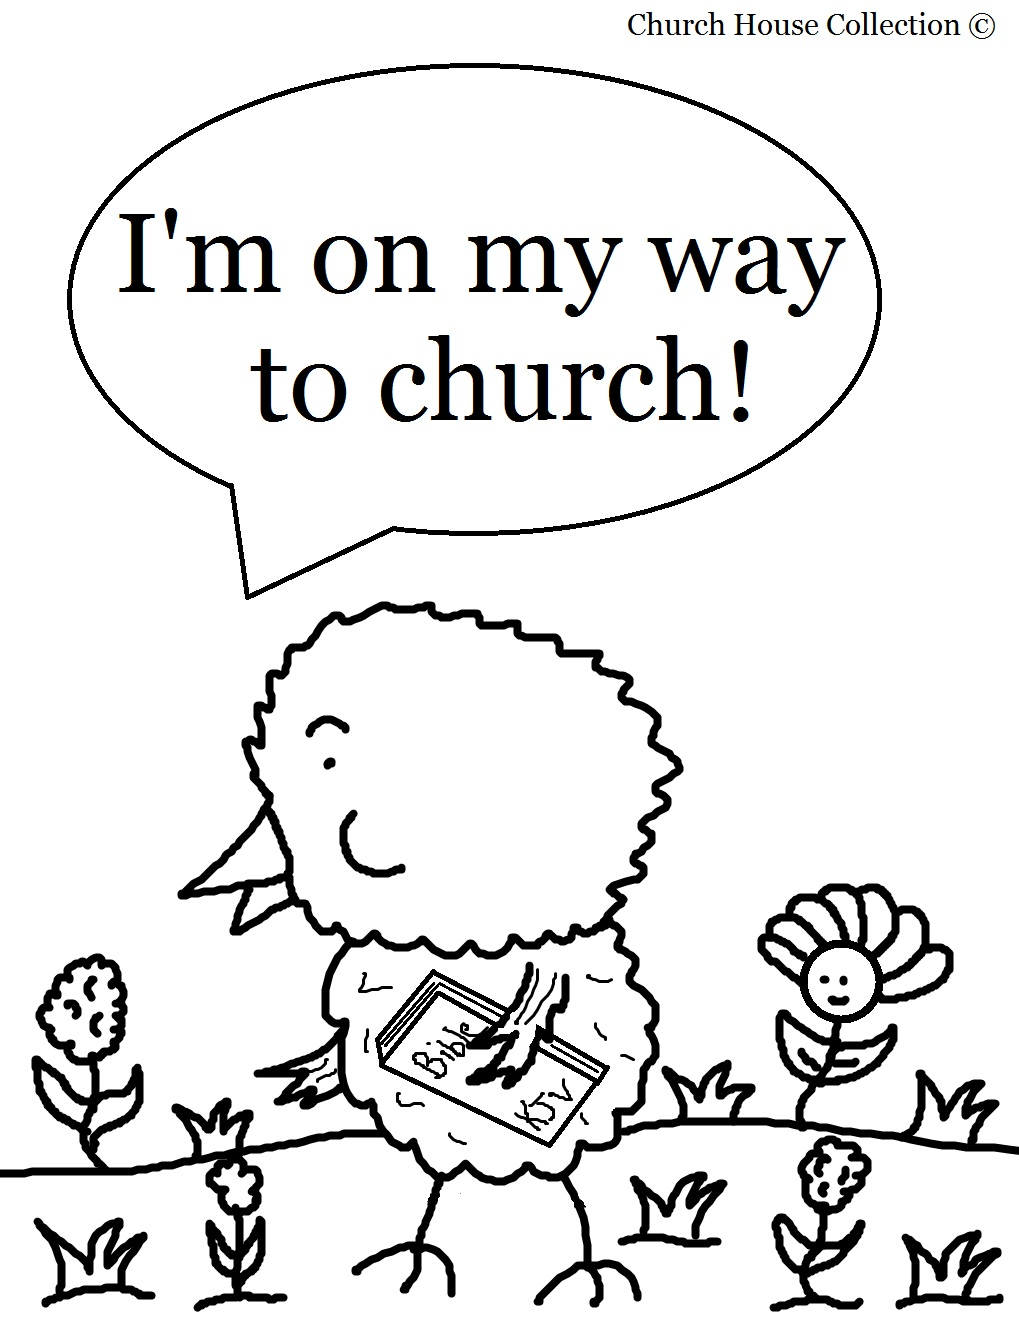 Easter Chick Coloring Page For Sunday School Sunday School Coloring Pages For Preschoolers